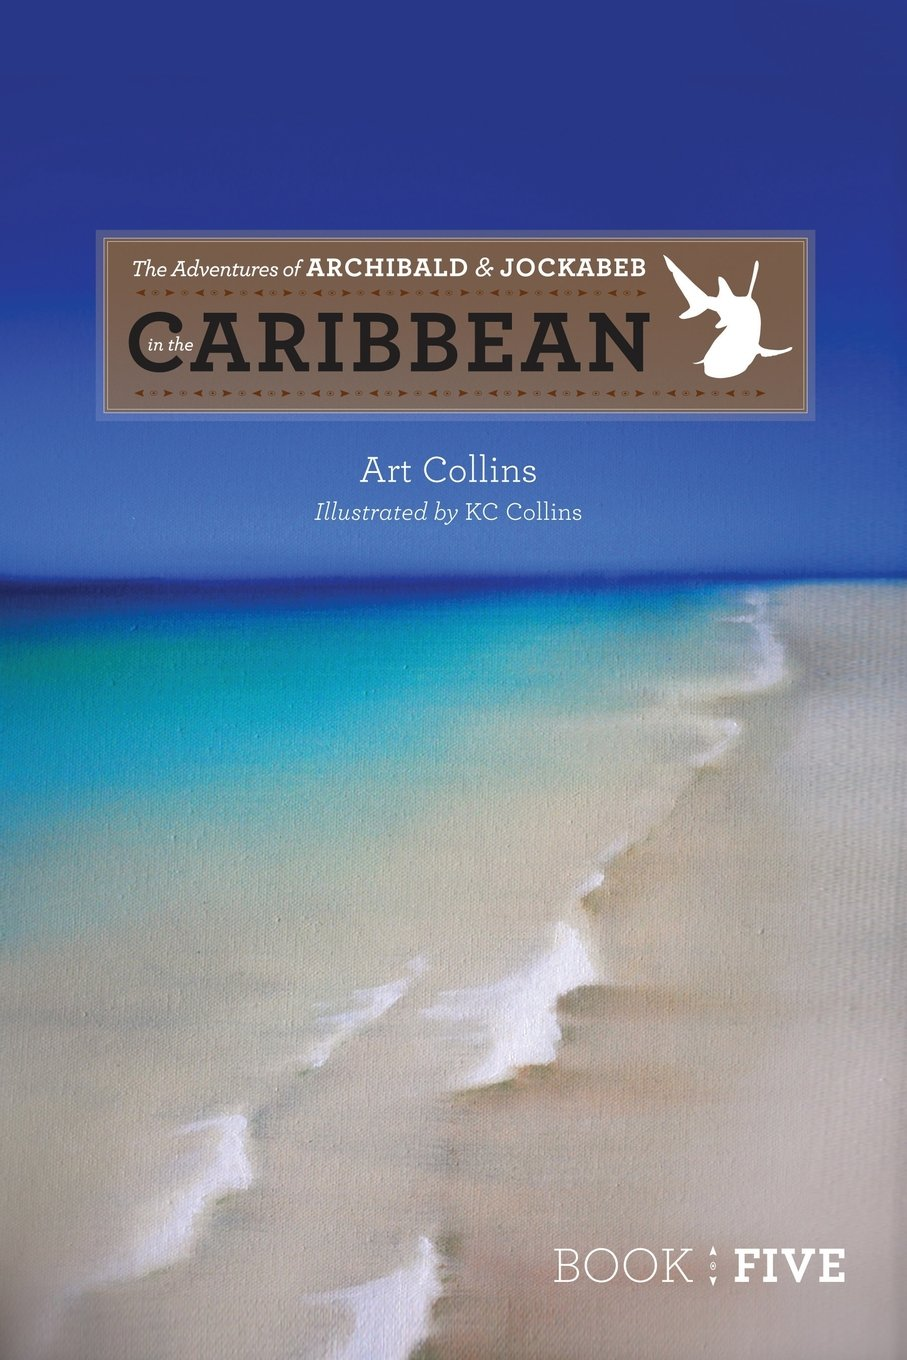 The Adventures of Archibald and Jockabeb: In the Caribbean (Adventures of Archibald & Jockabeb) pdf